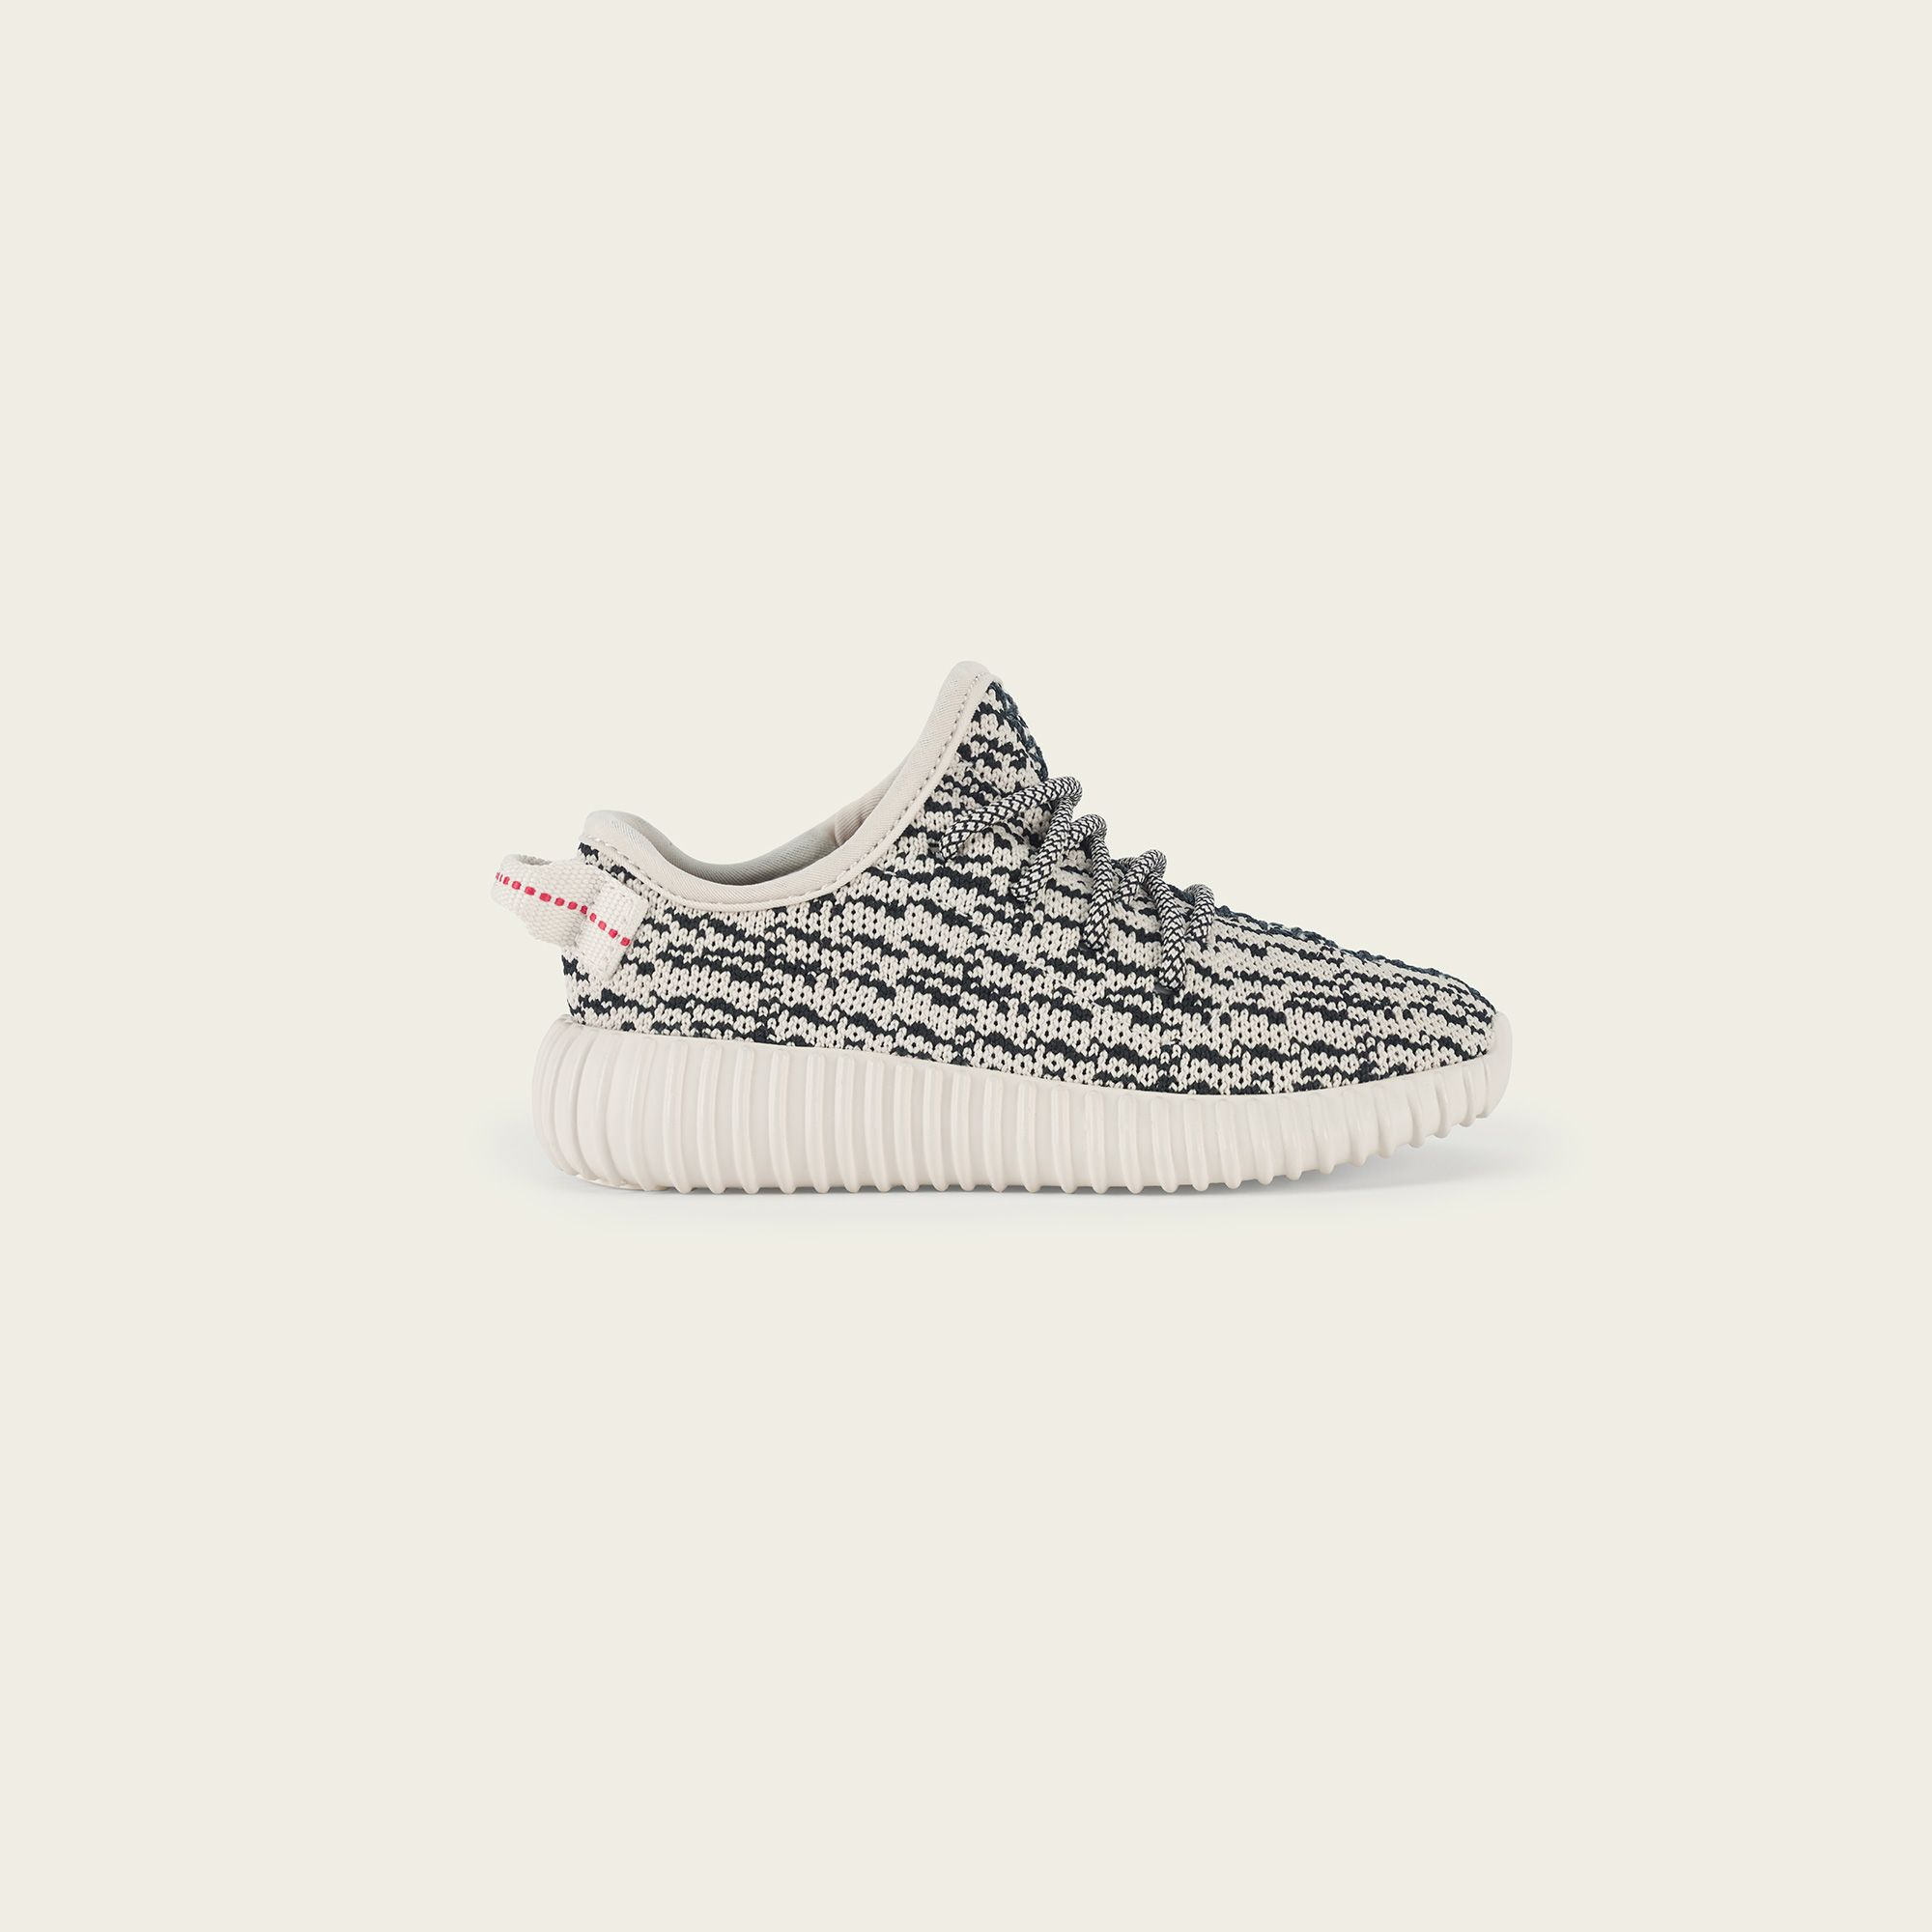 #adidas yeezy #toddler #shoes size 10c kanye west boost 350 turtle dove  kids from $120.0 | Adidas Baby | Pinterest | Toddlers, Turtle dove and  Kanye west